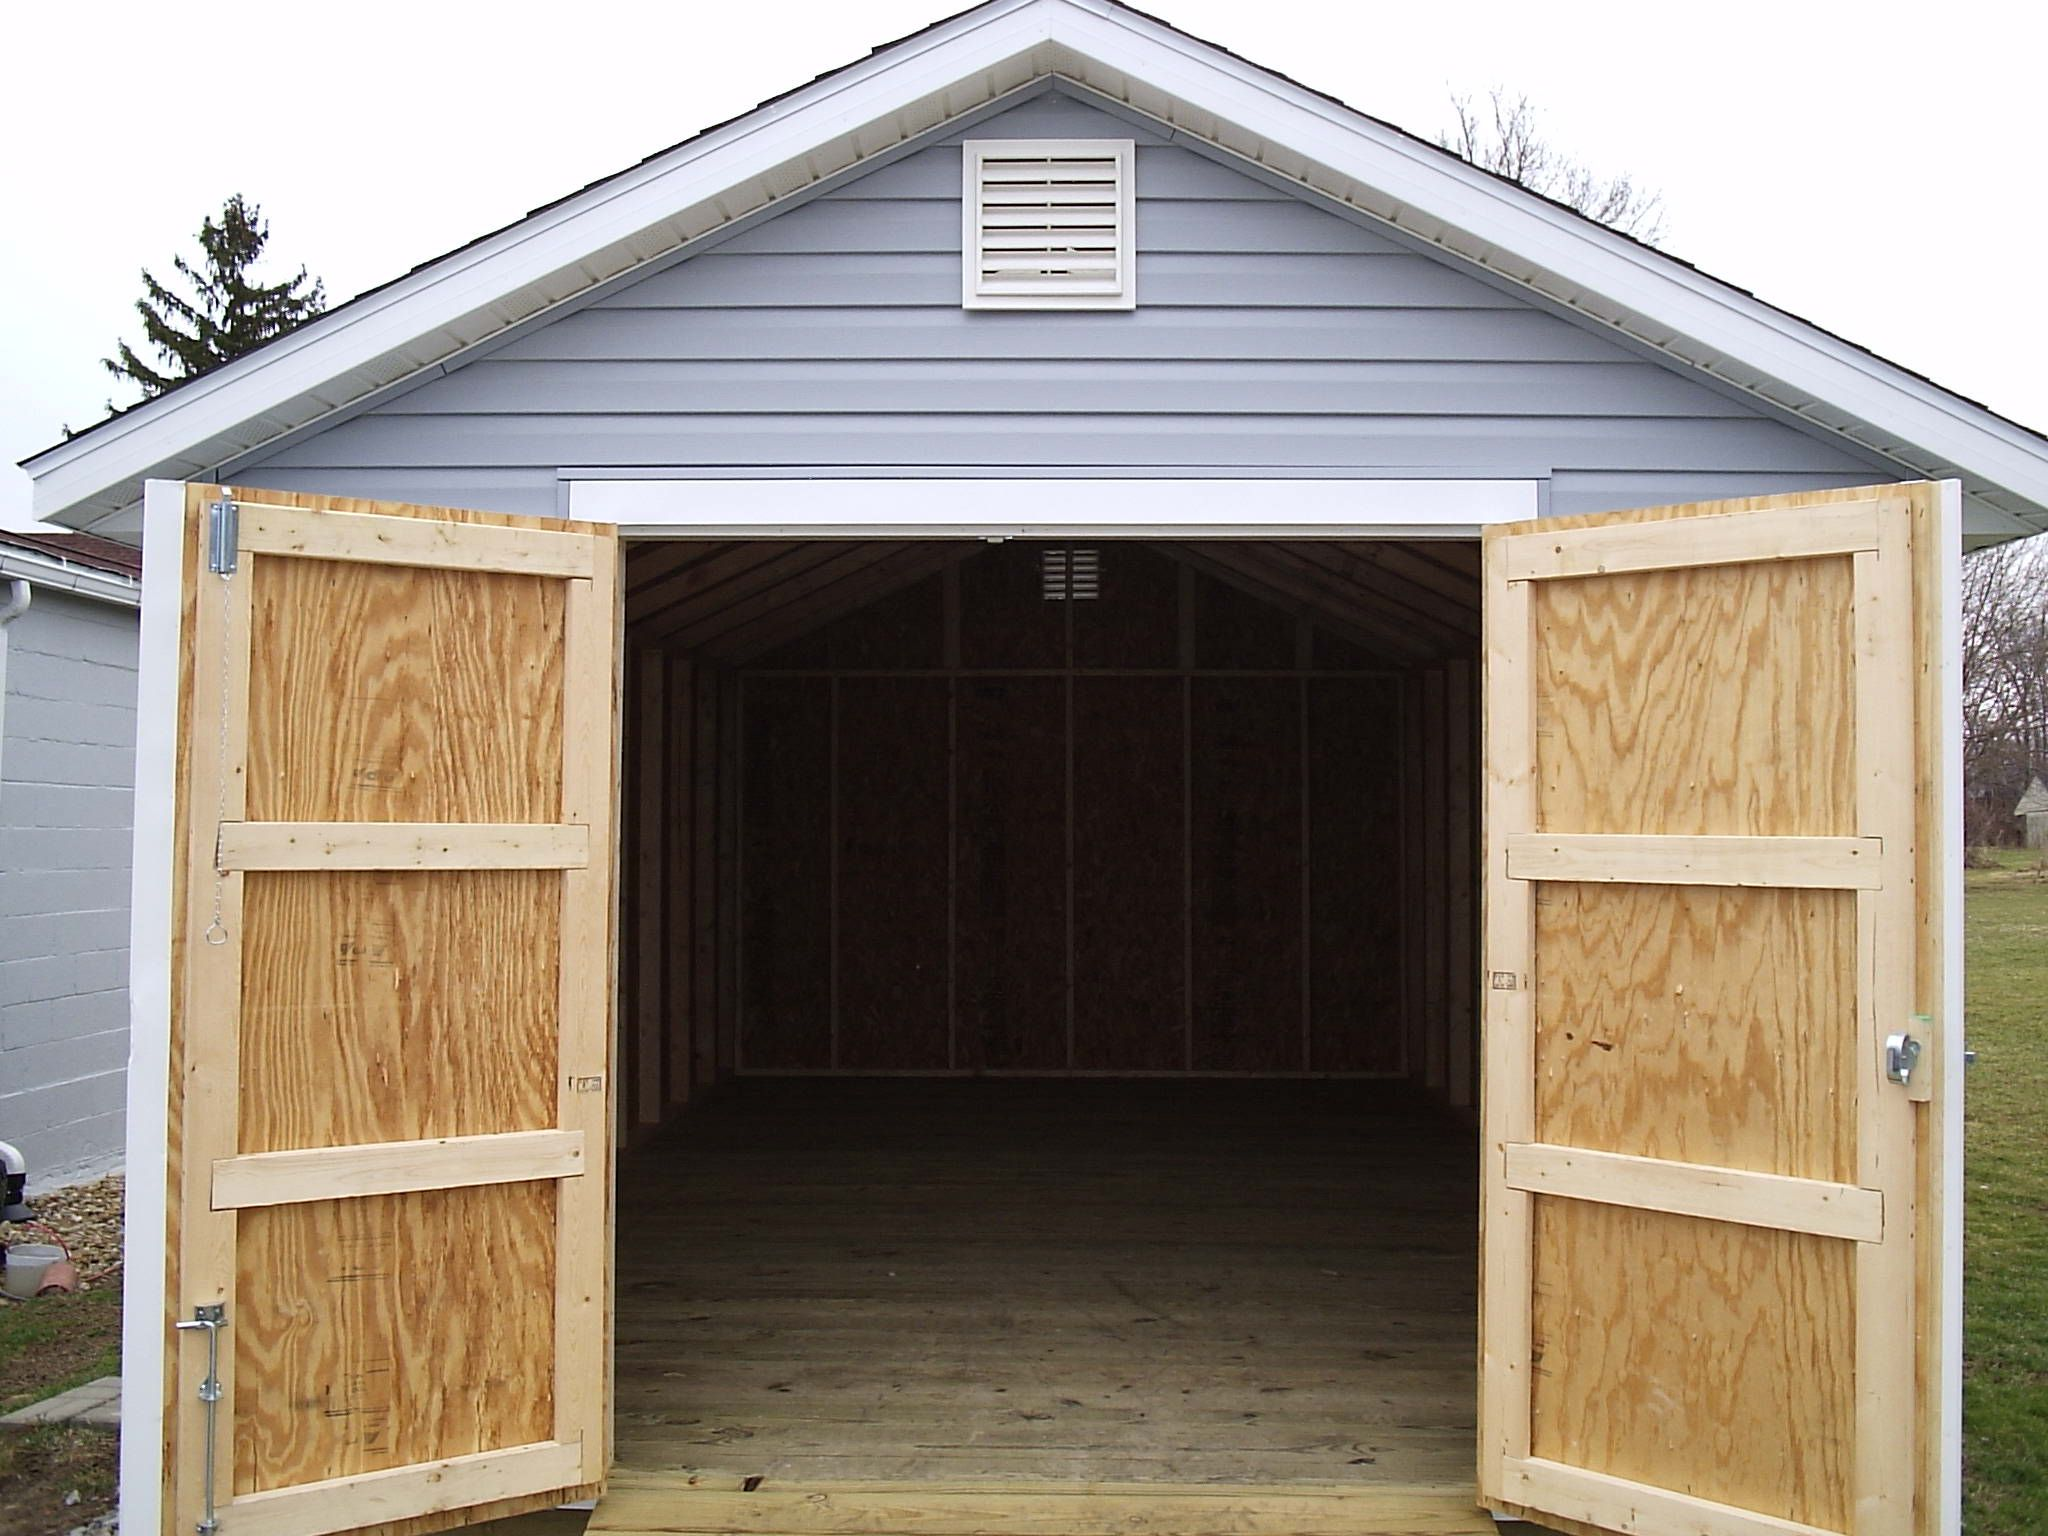 Shed Door Design Ideas Best 25 Shed Doors Ideas On Pinterest  Pallet Door Making Barn .